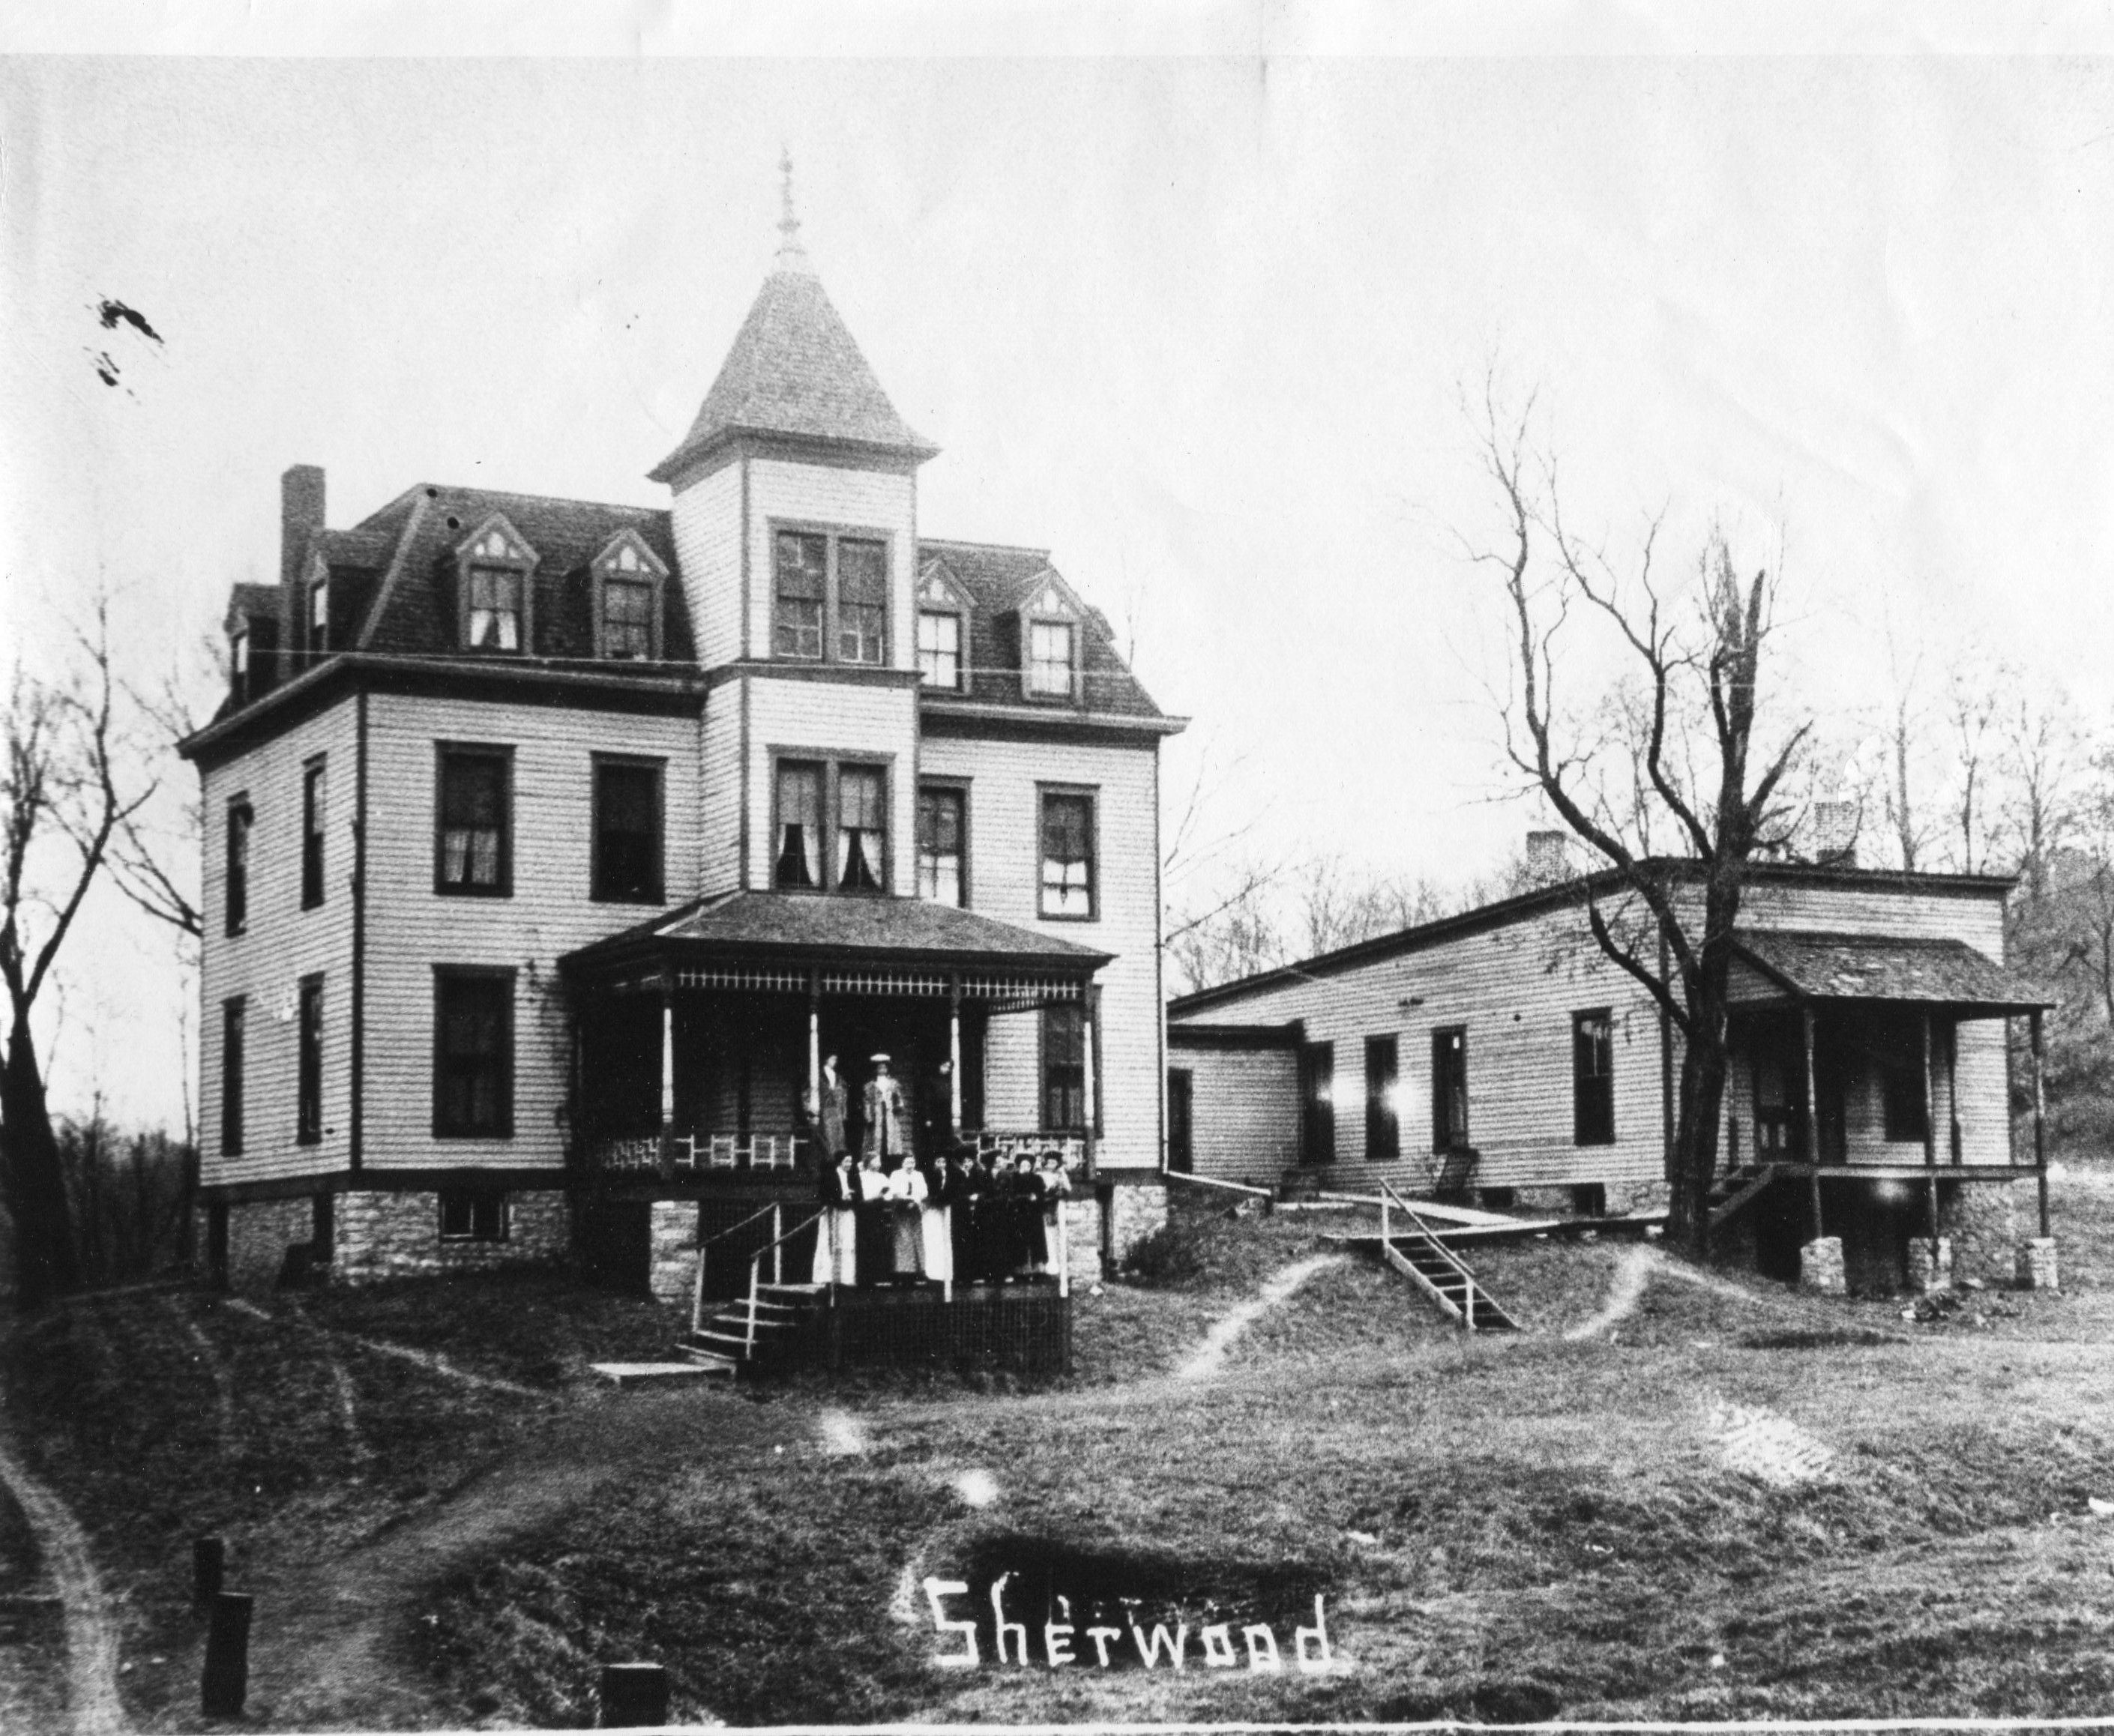 A photo of the front view of the Sherwood House.